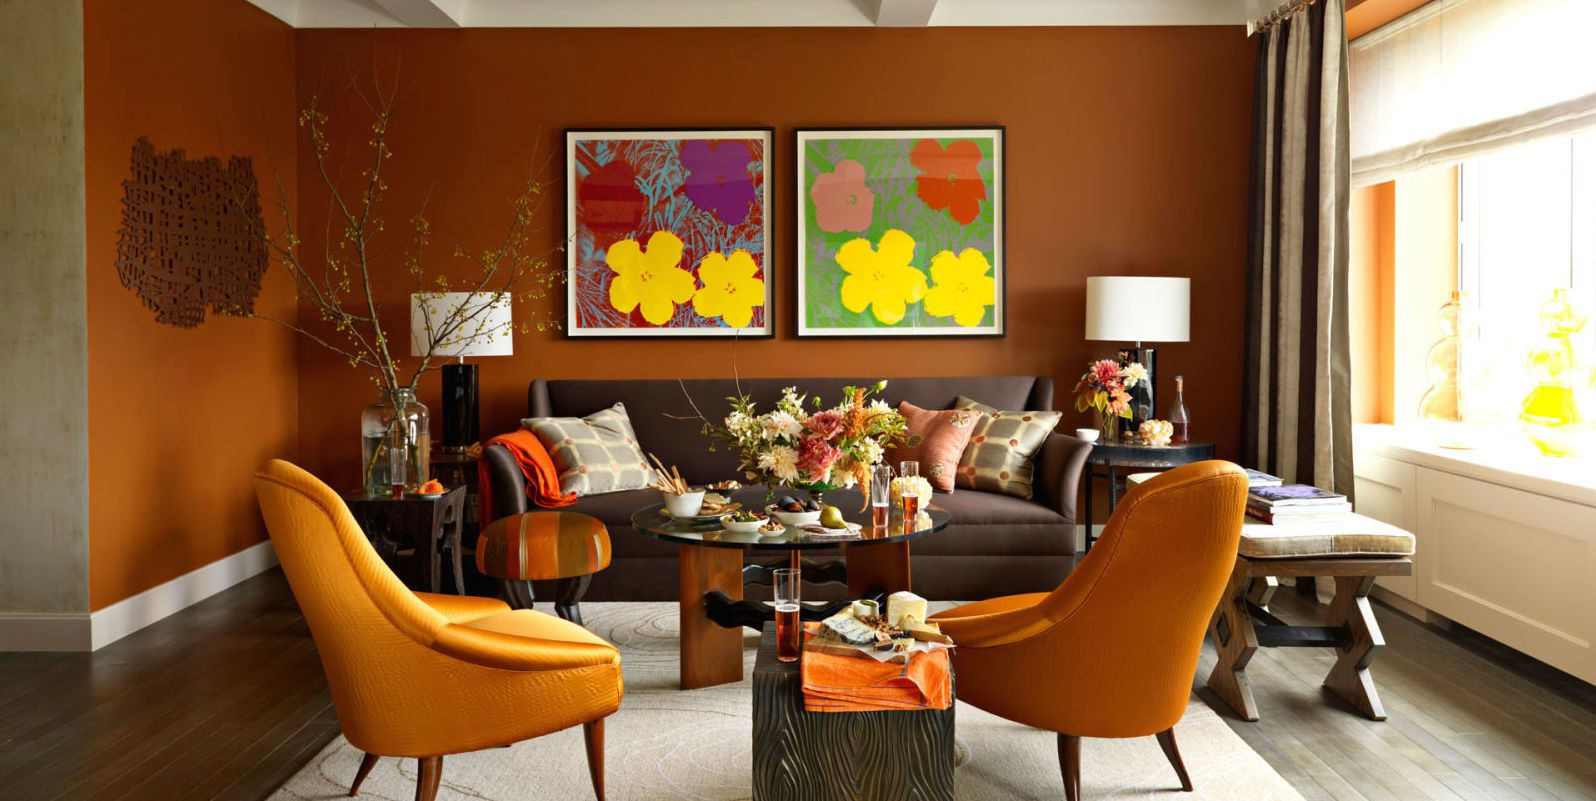 14 Best Orange Paints For The Perfect Pop Of Color Living Room Orange Burnt Orange Living Room Orange Living Room Paint #orange #living #room #paint